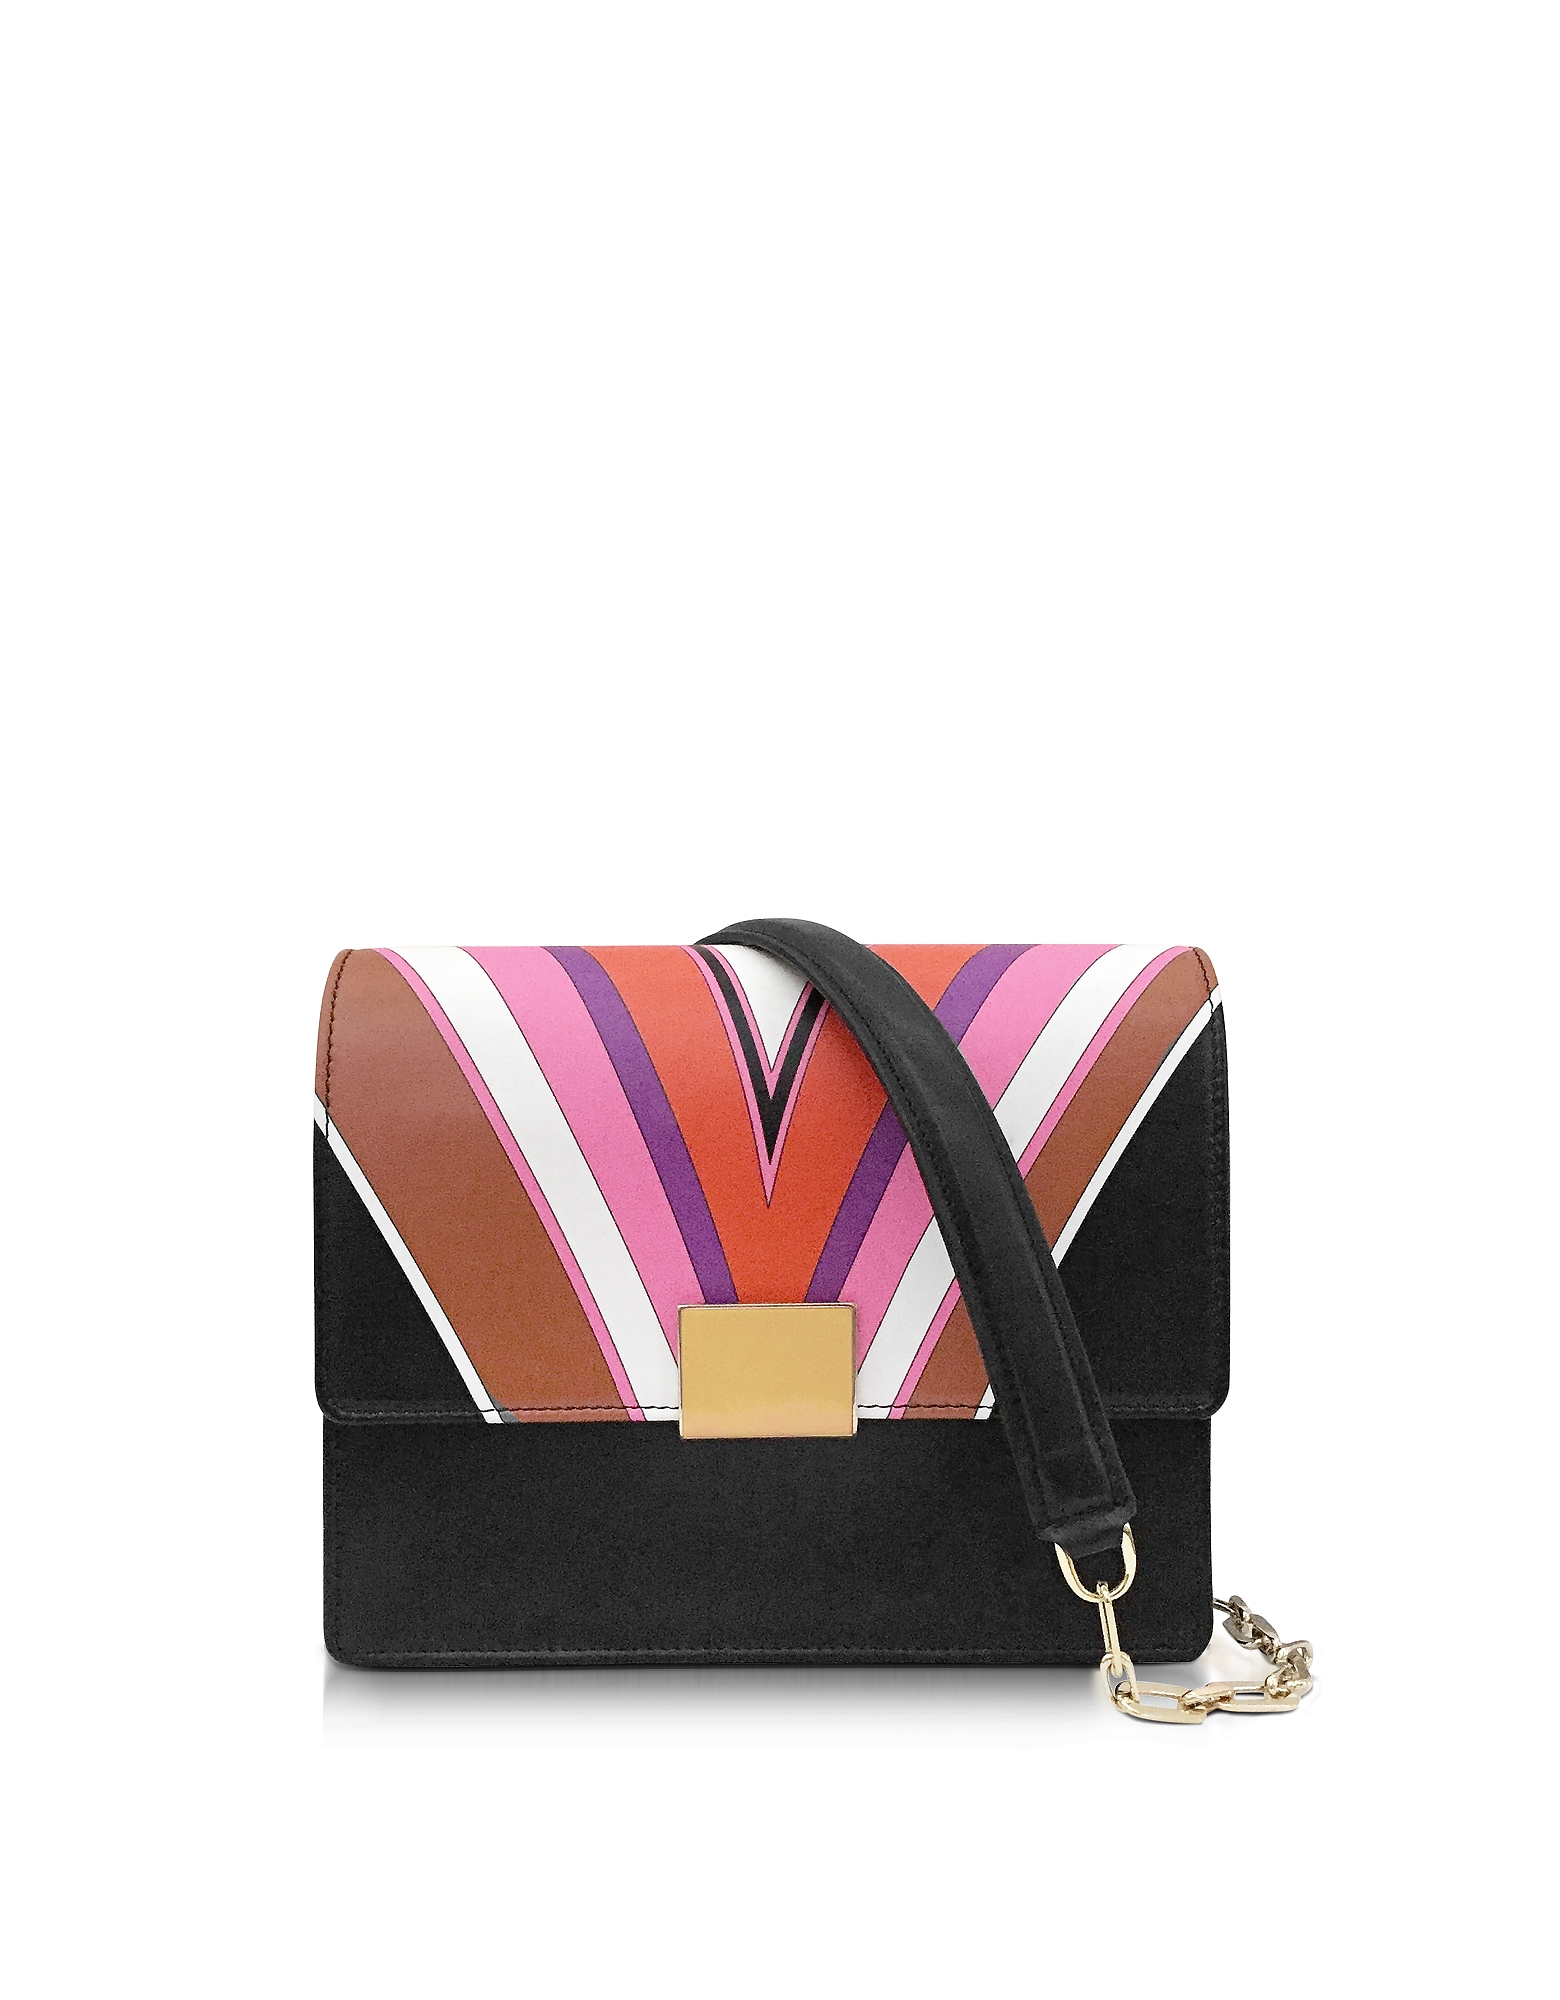 Emilio Pucci Handbags, Stella Printed Shoulder Bag